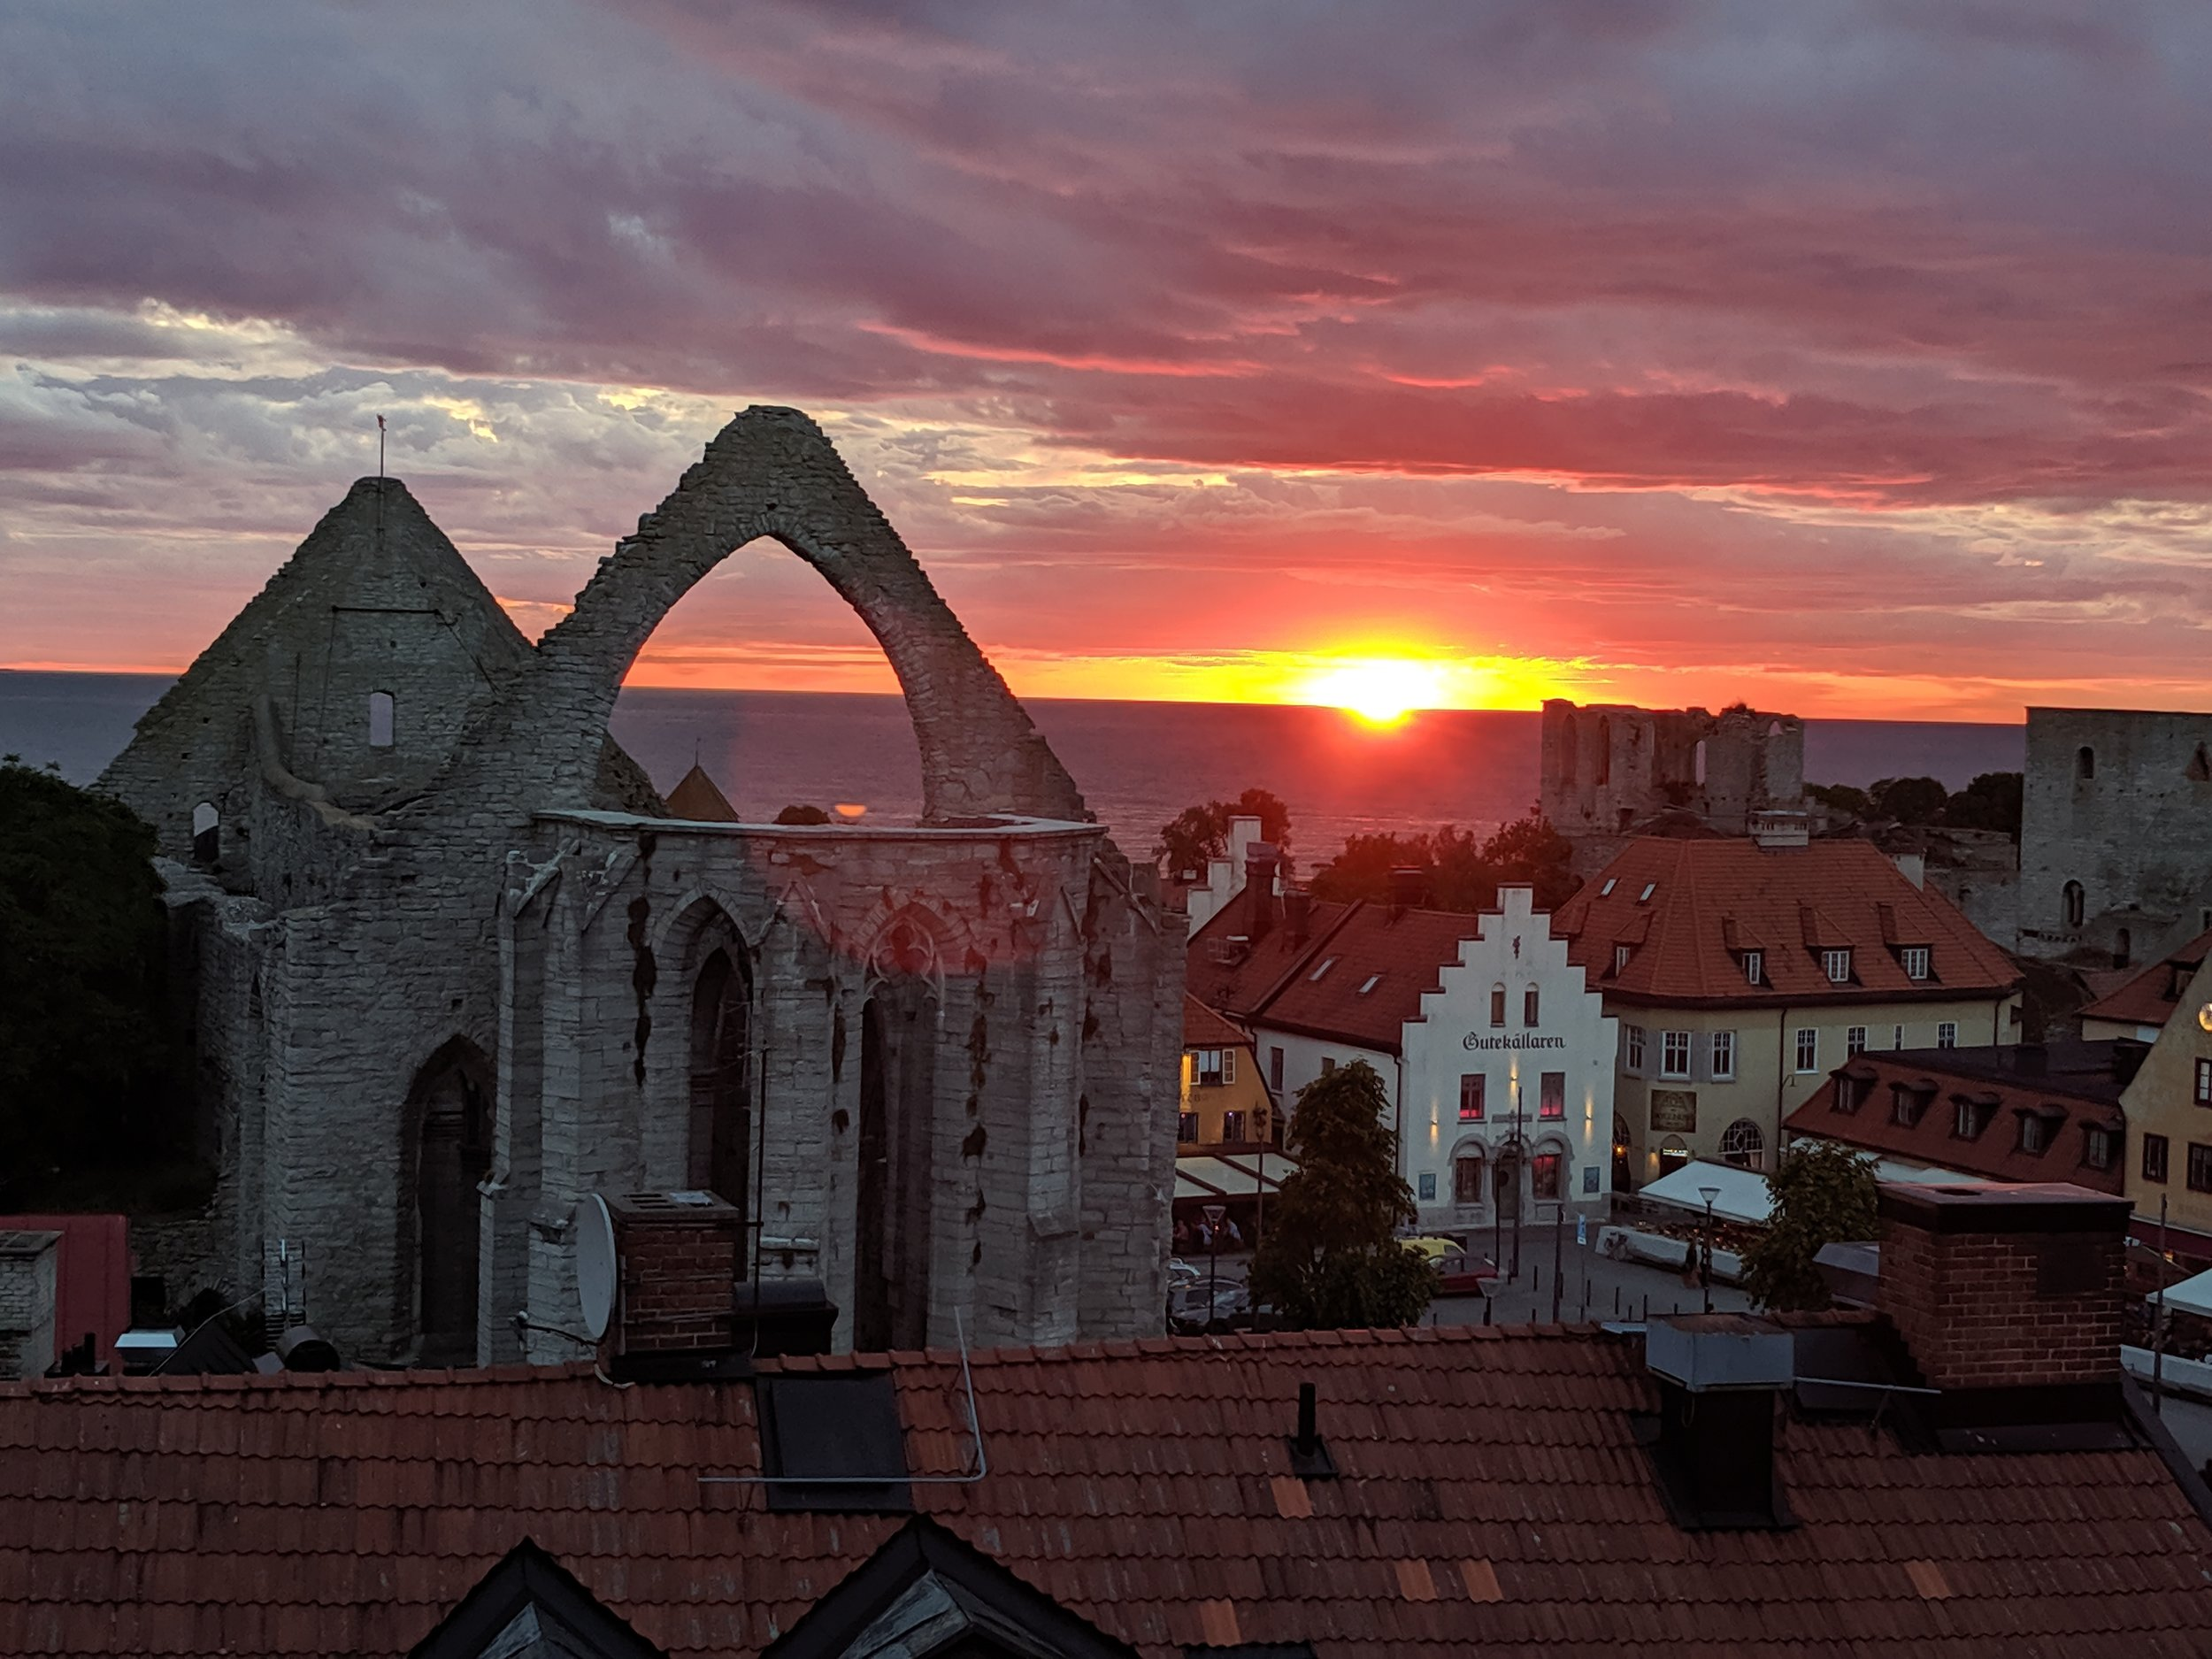 Sunset over Visby, Gotlund, a key Baltic trading center in the Hanseatic League